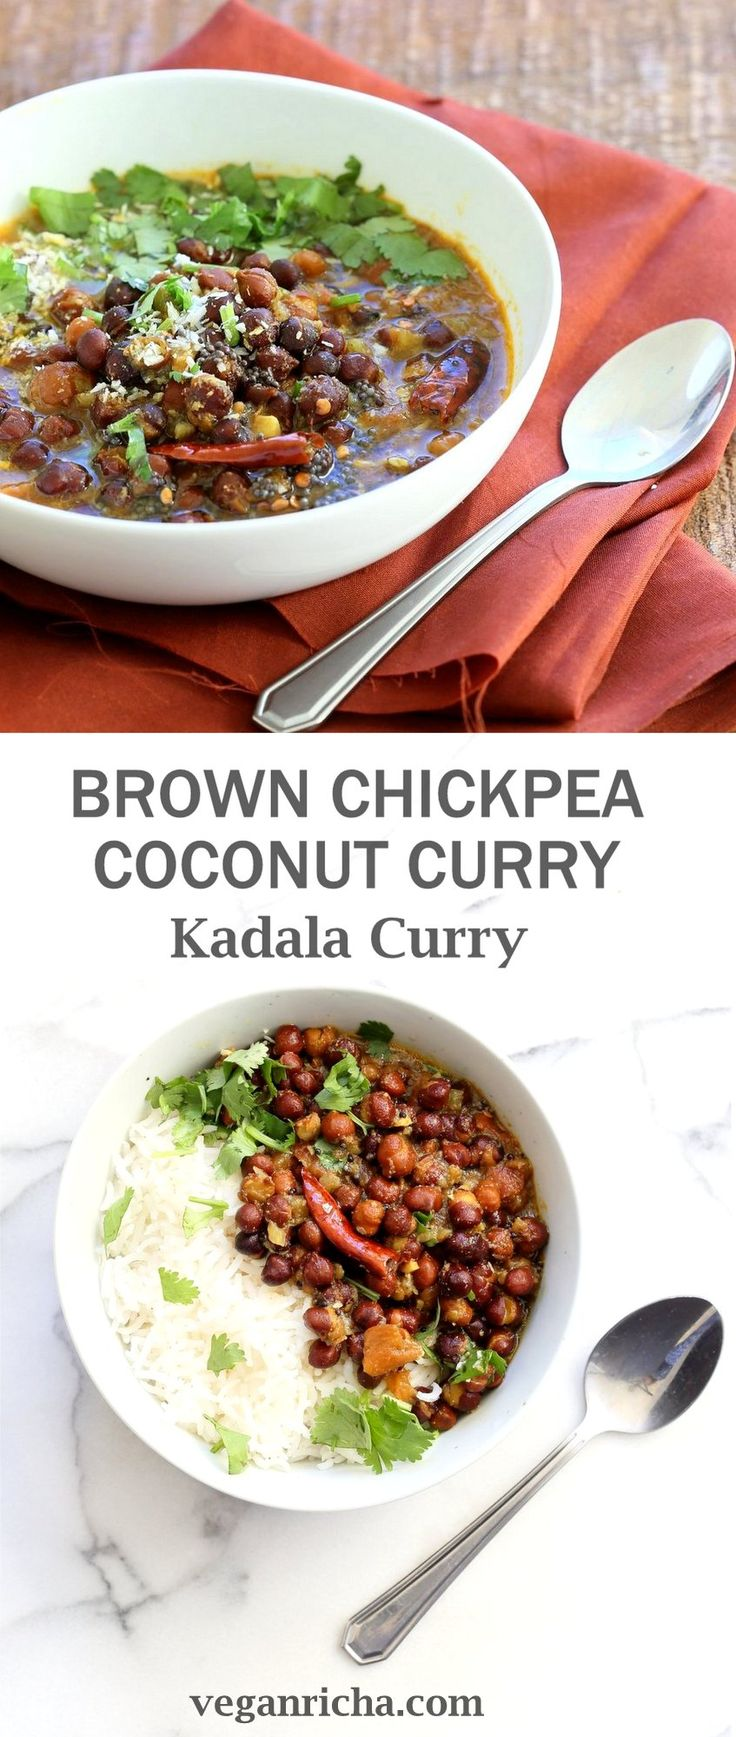 Kadala Curry - Bengal Gram or Kala Chana Curry with Coconut and Spices. Brown Chickpea Coconut Curry from South India (Kerala). Serve with rice, appams, dosas or make a bowl with roasted veggies and grains. Vegan Gluten-free Soy-free Indian Recipe | VeganRicha.com